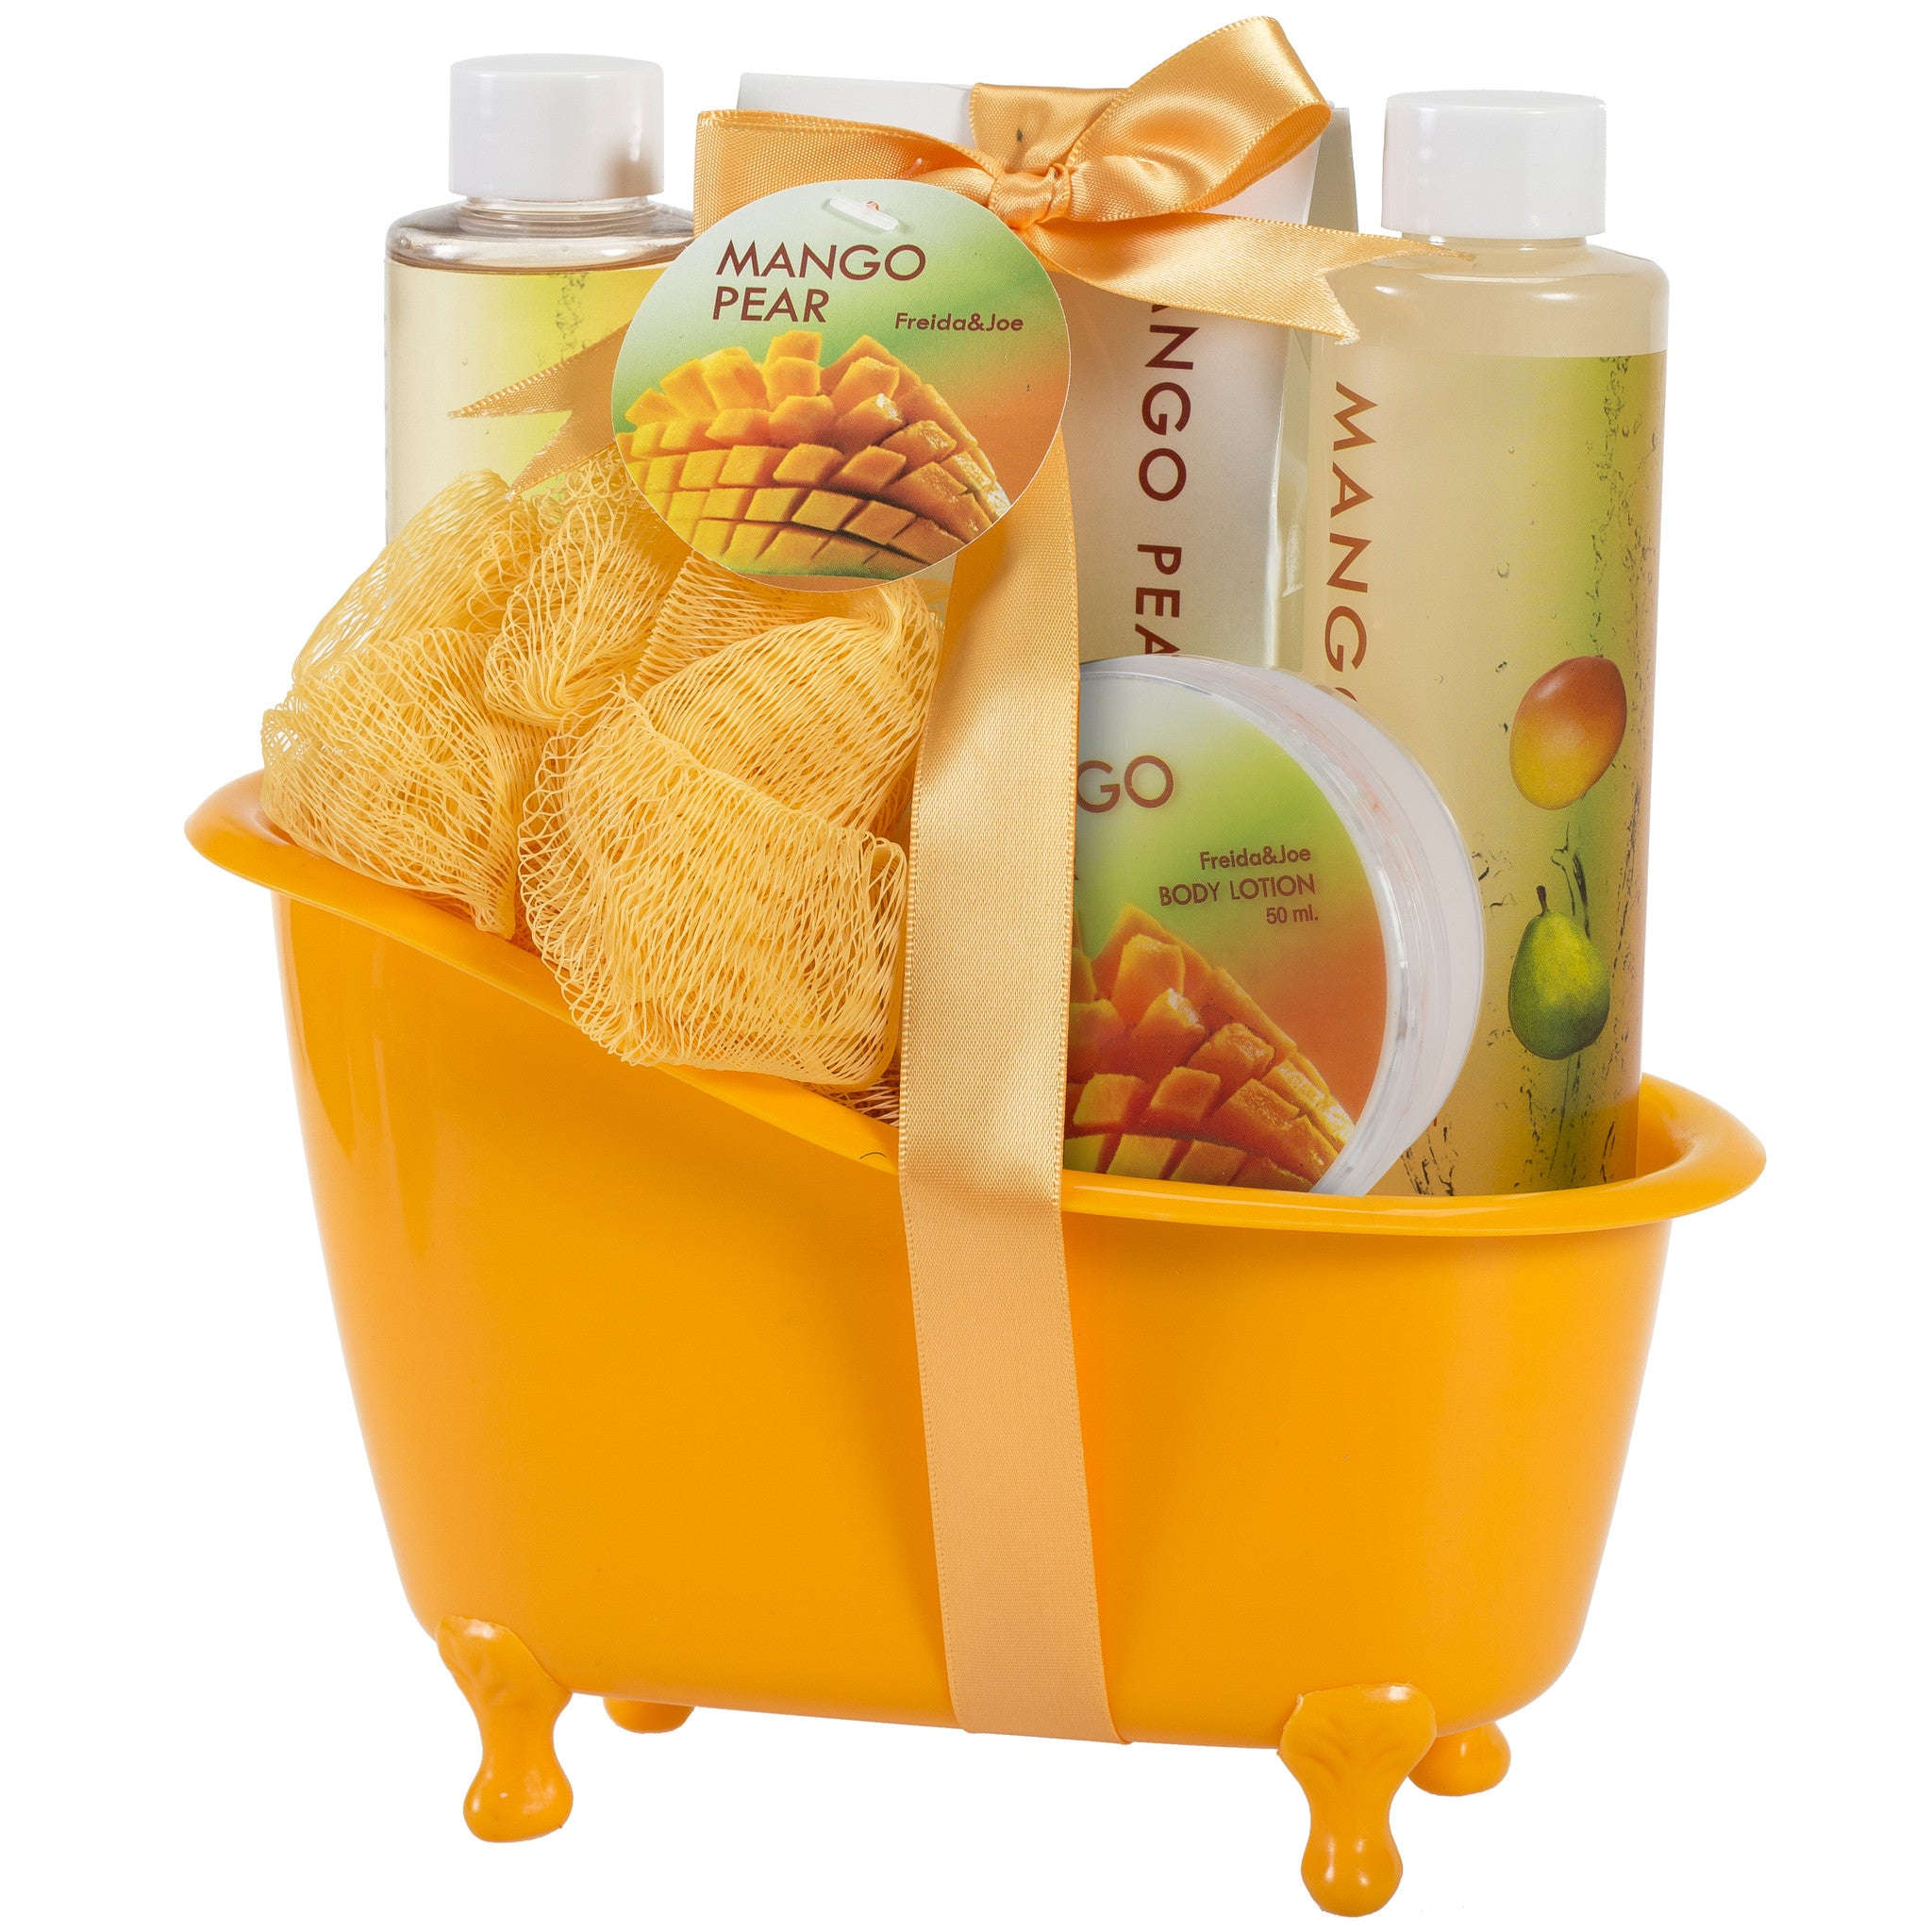 Mango Pears Tub Spa Bath Set: Shower Gel, Bubble Bath, Body Lotion, Bath Salt, & Puff